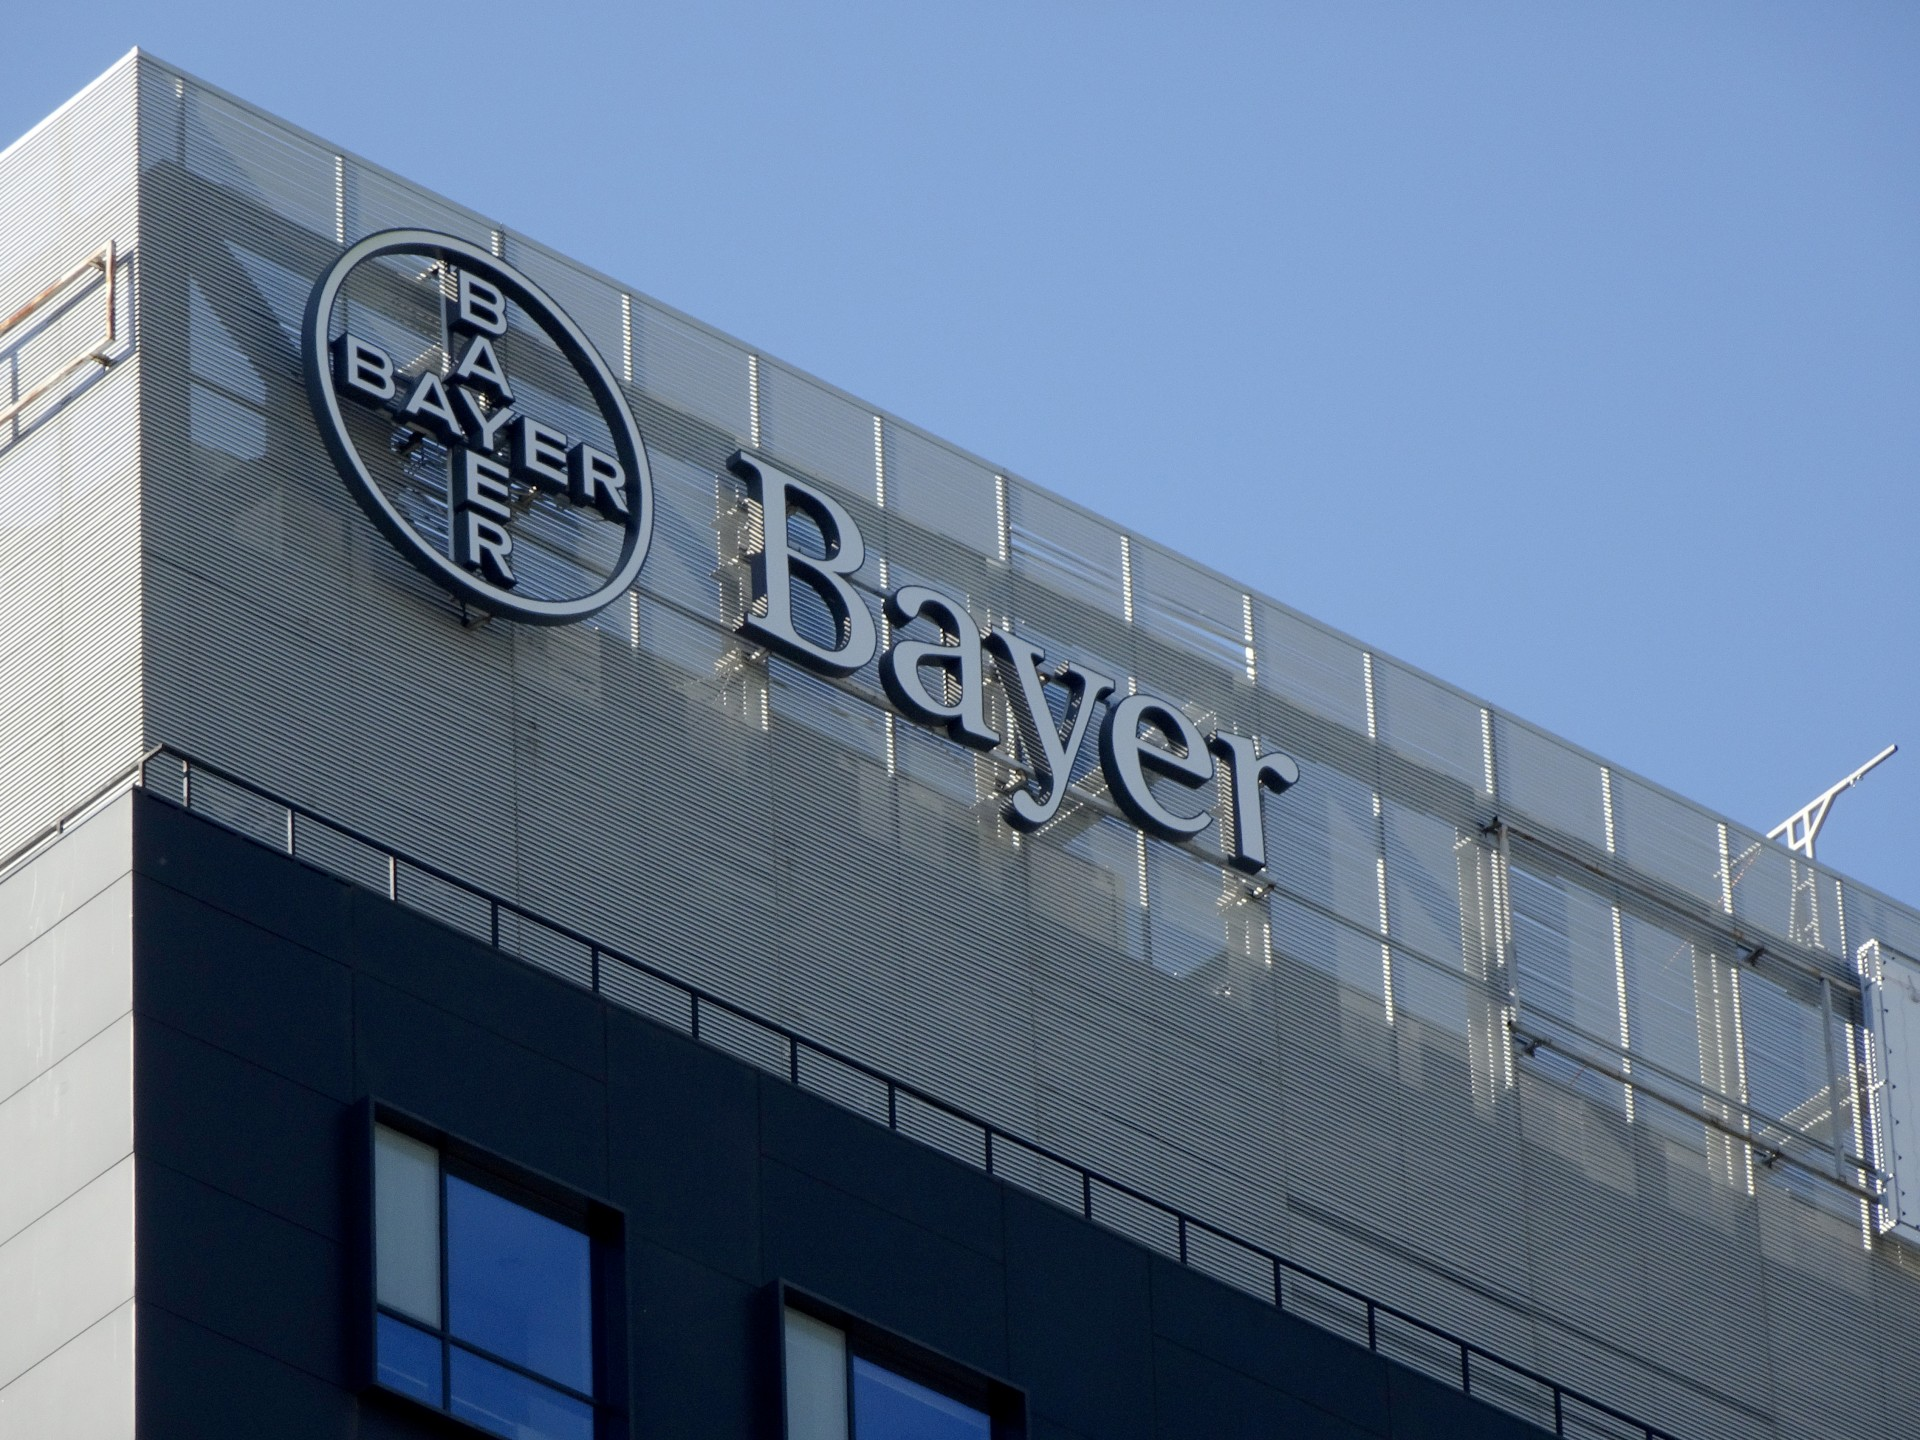 Bayer - firme din zona corporatista Pipera